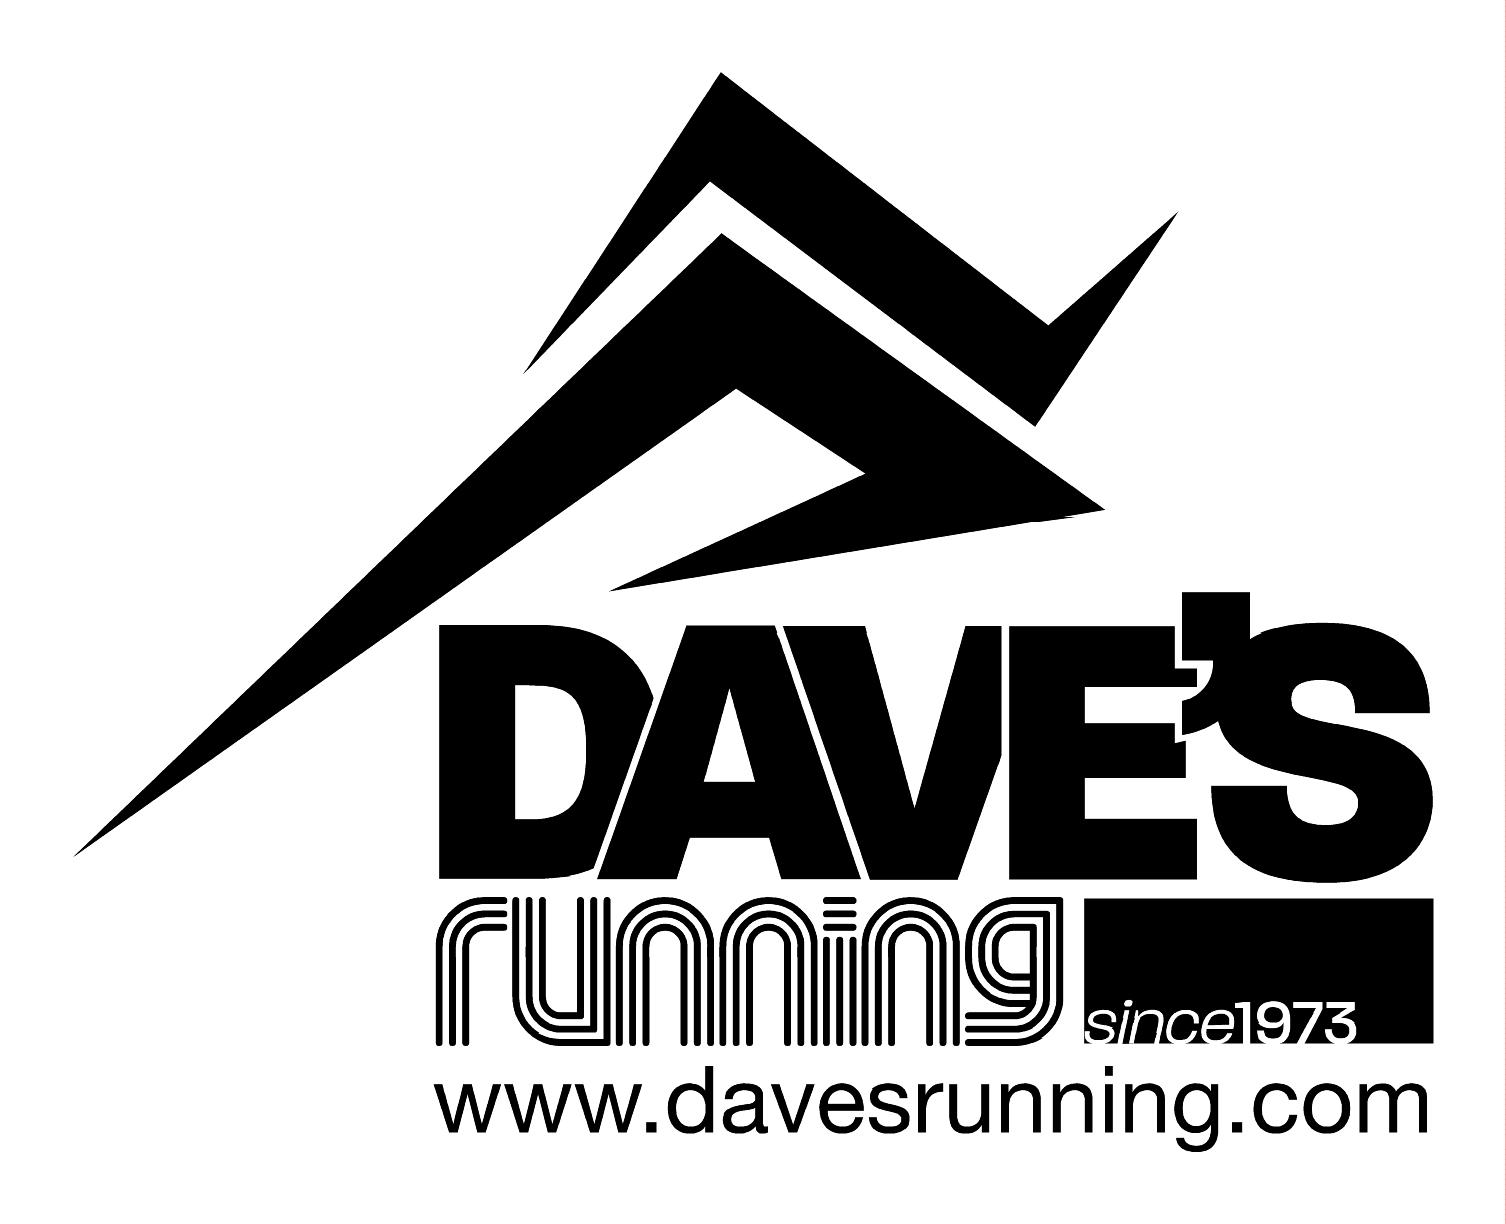 Daves Running Shop